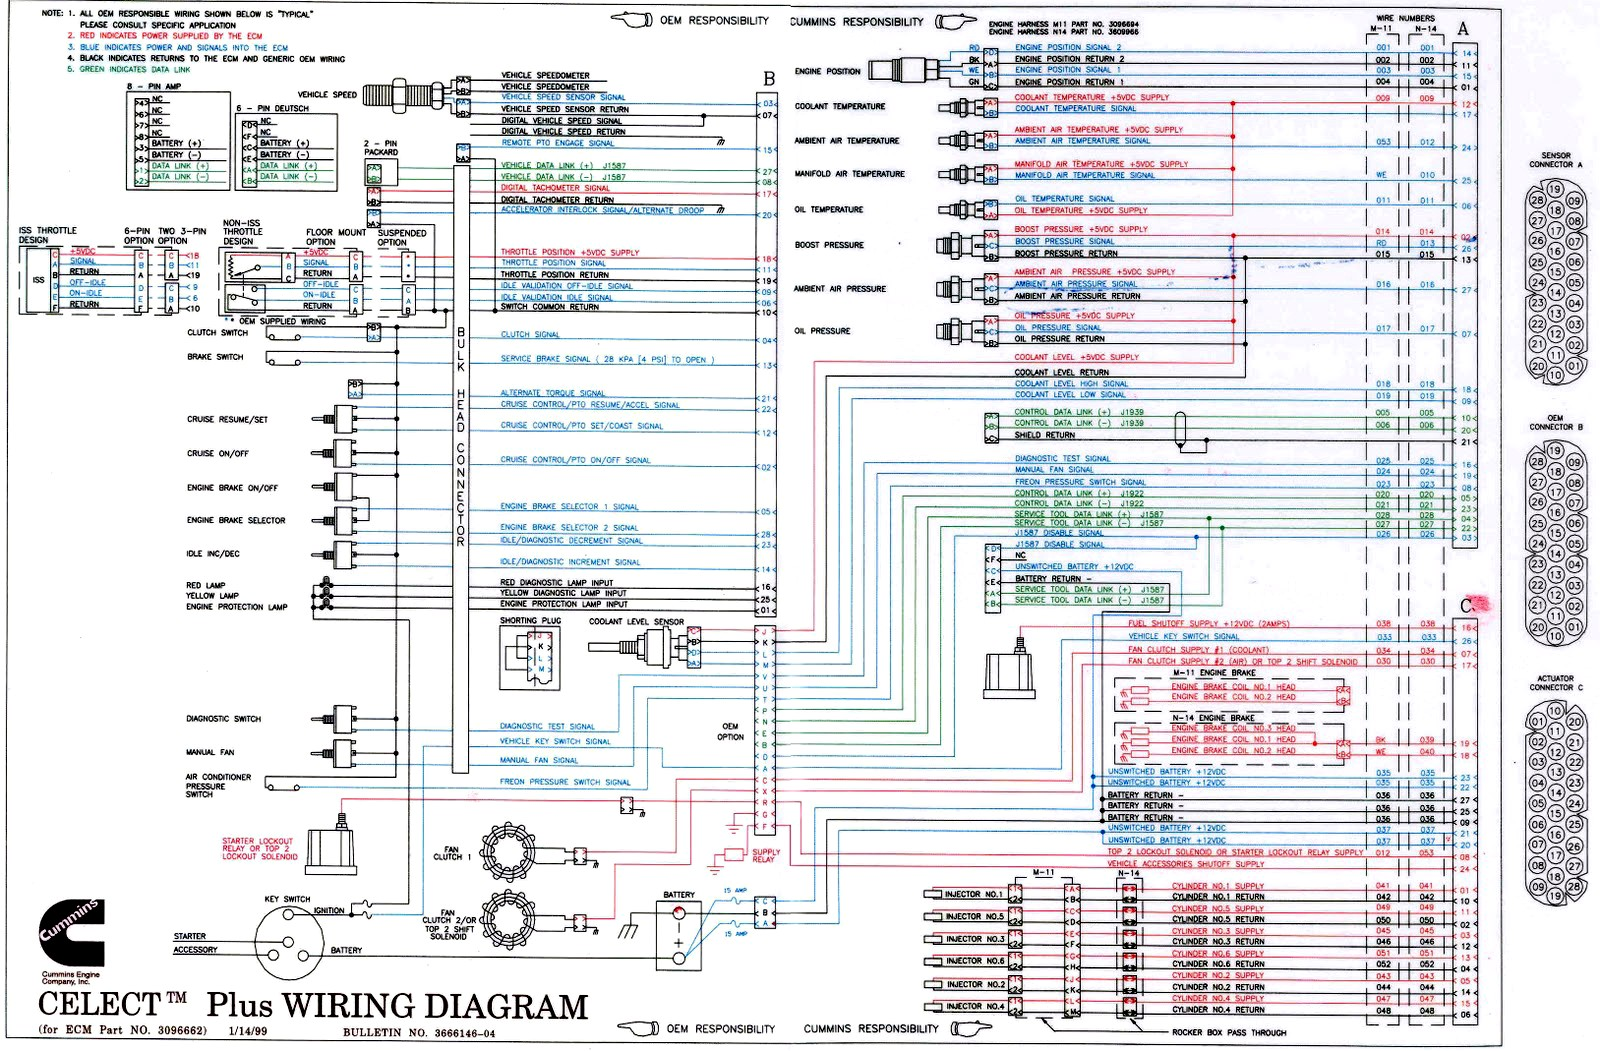 Celect+Plus+Wiring+Diagram+Cummins kenworth t660 wiring diagram kenworth t660 battery location \u2022 free kenworth t660 wiring diagram at alyssarenee.co